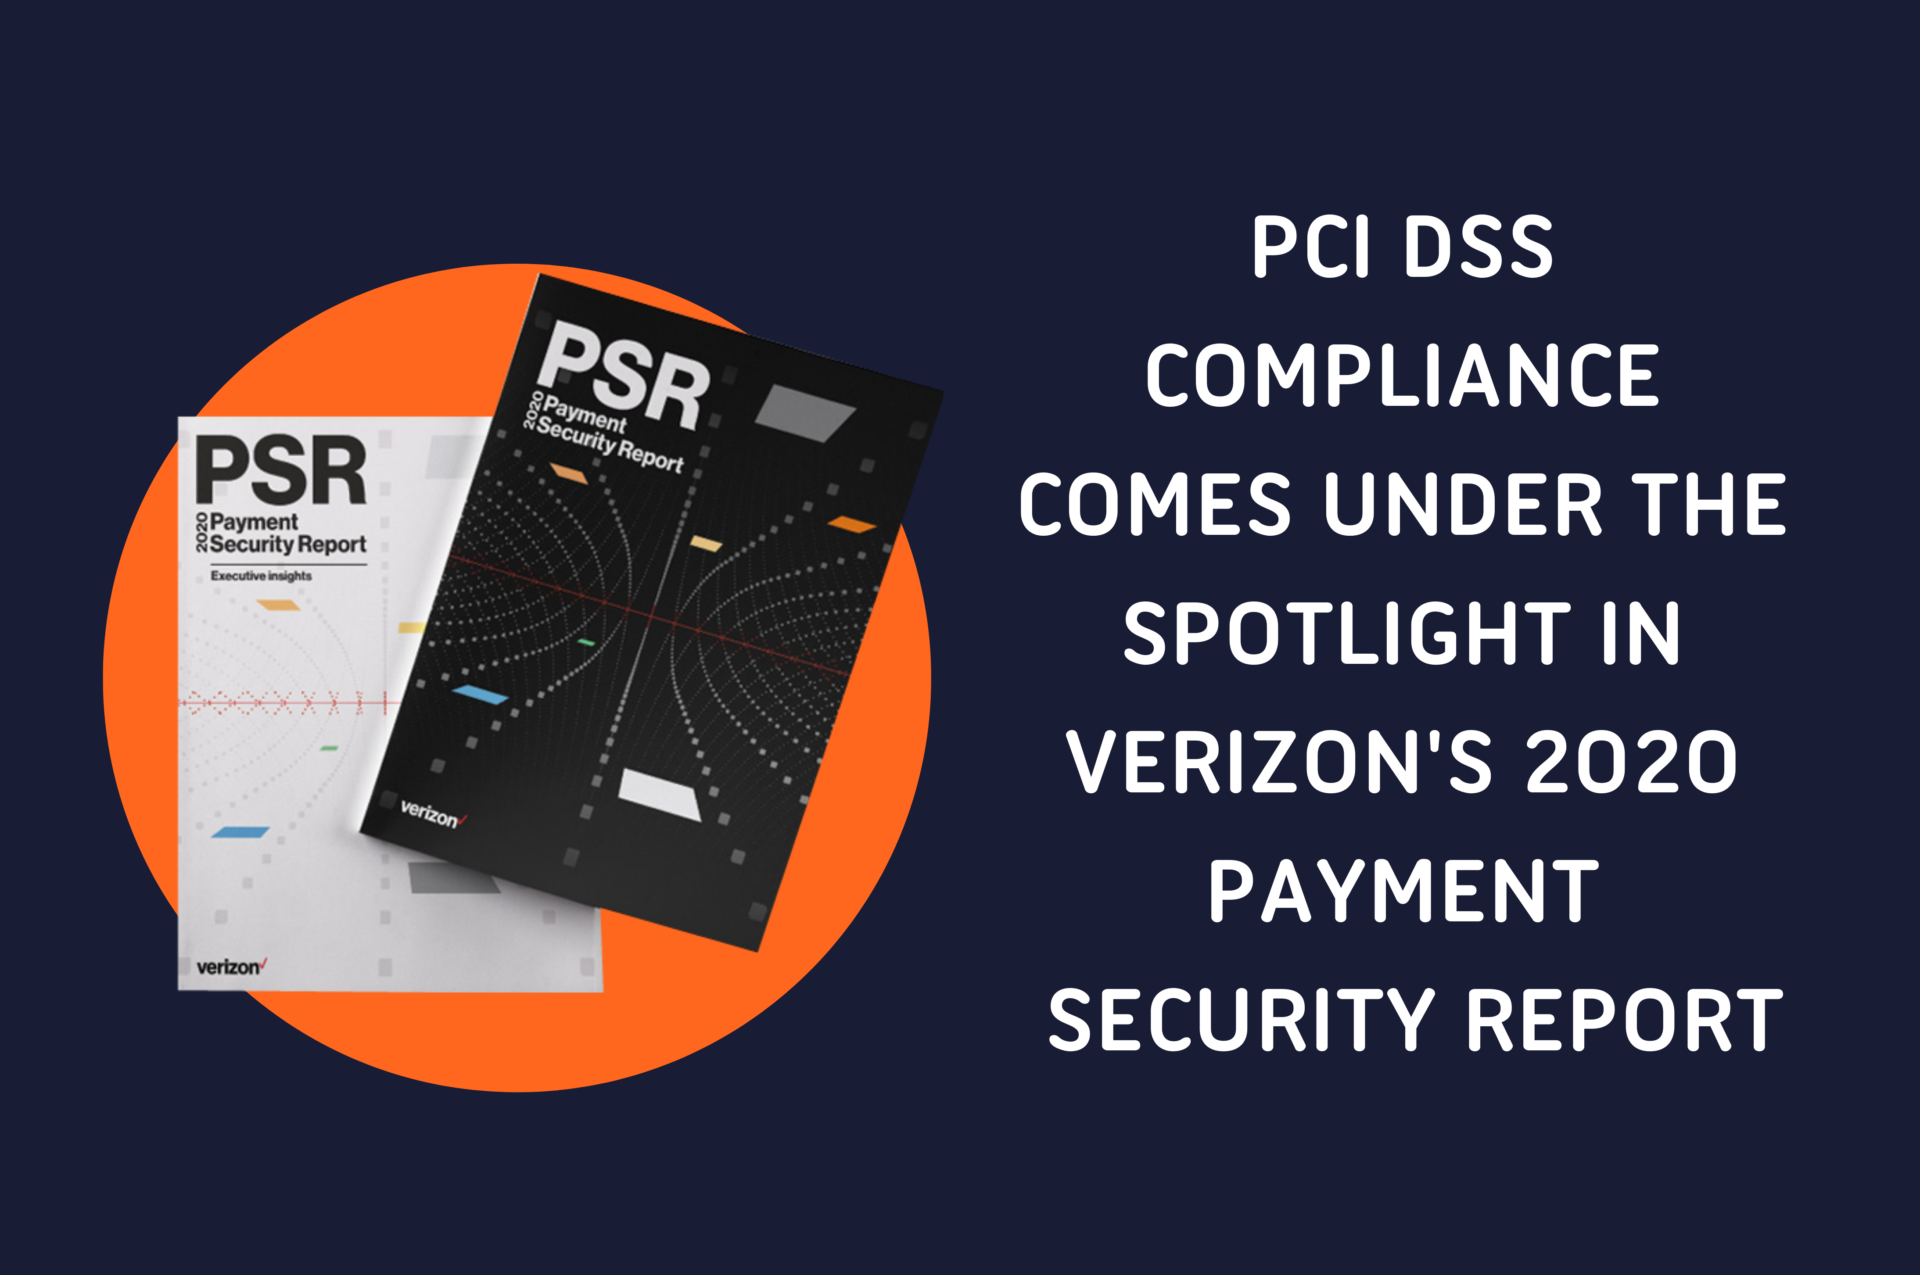 Graphic containing the cover of Verizon's 2020 Payment Security Report in a circle, and the title: PCI DSS Compliance Comes Under the Spotlight in Verizon's 2020 Payment Security Report